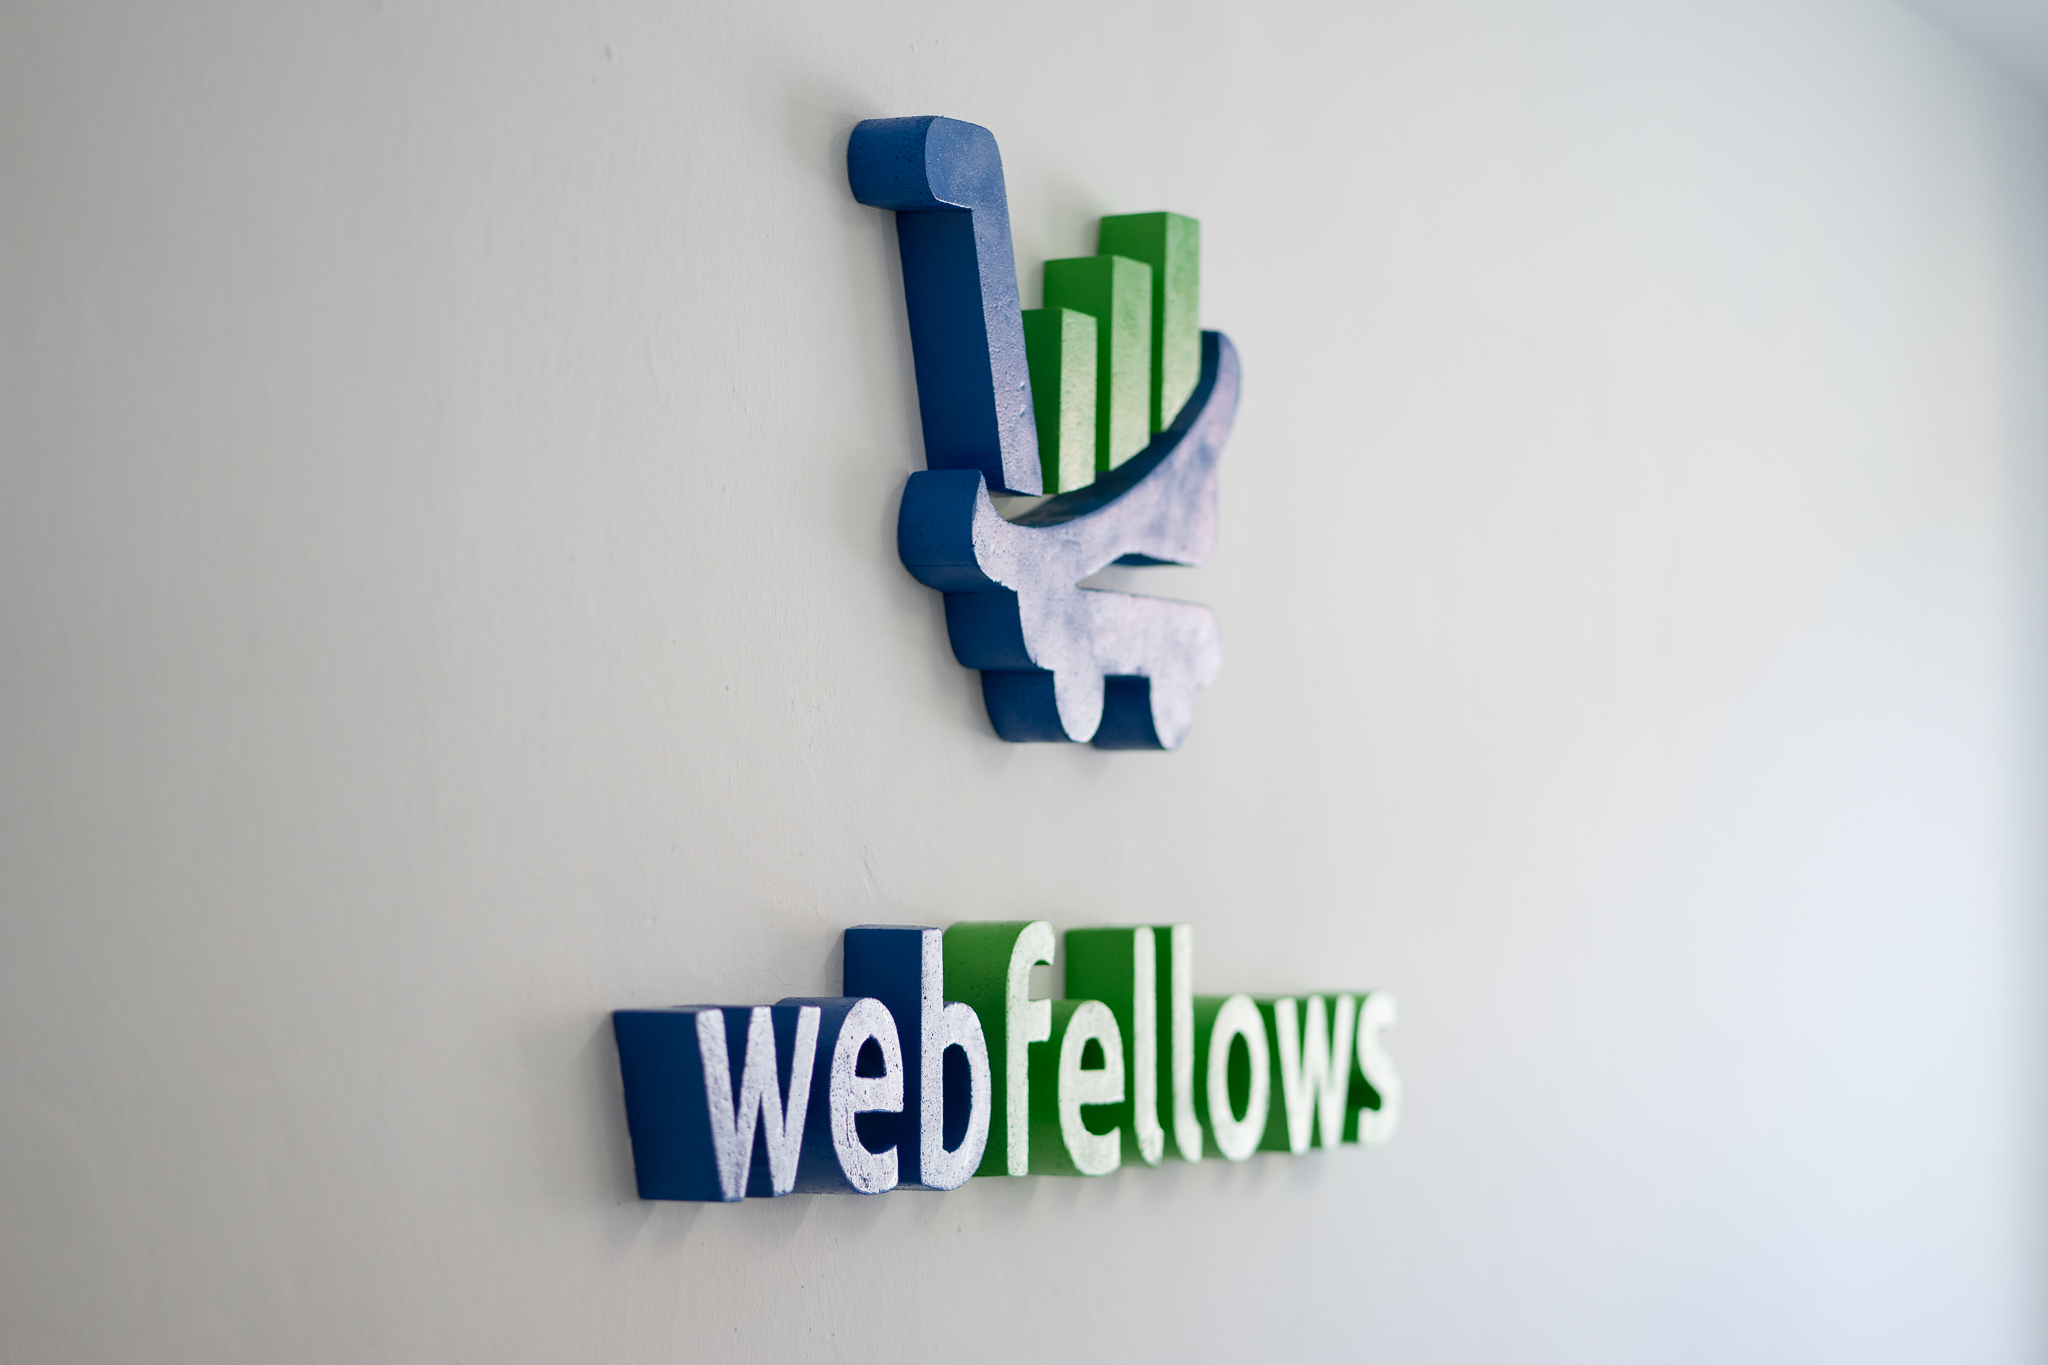 webfellows Logo Wall